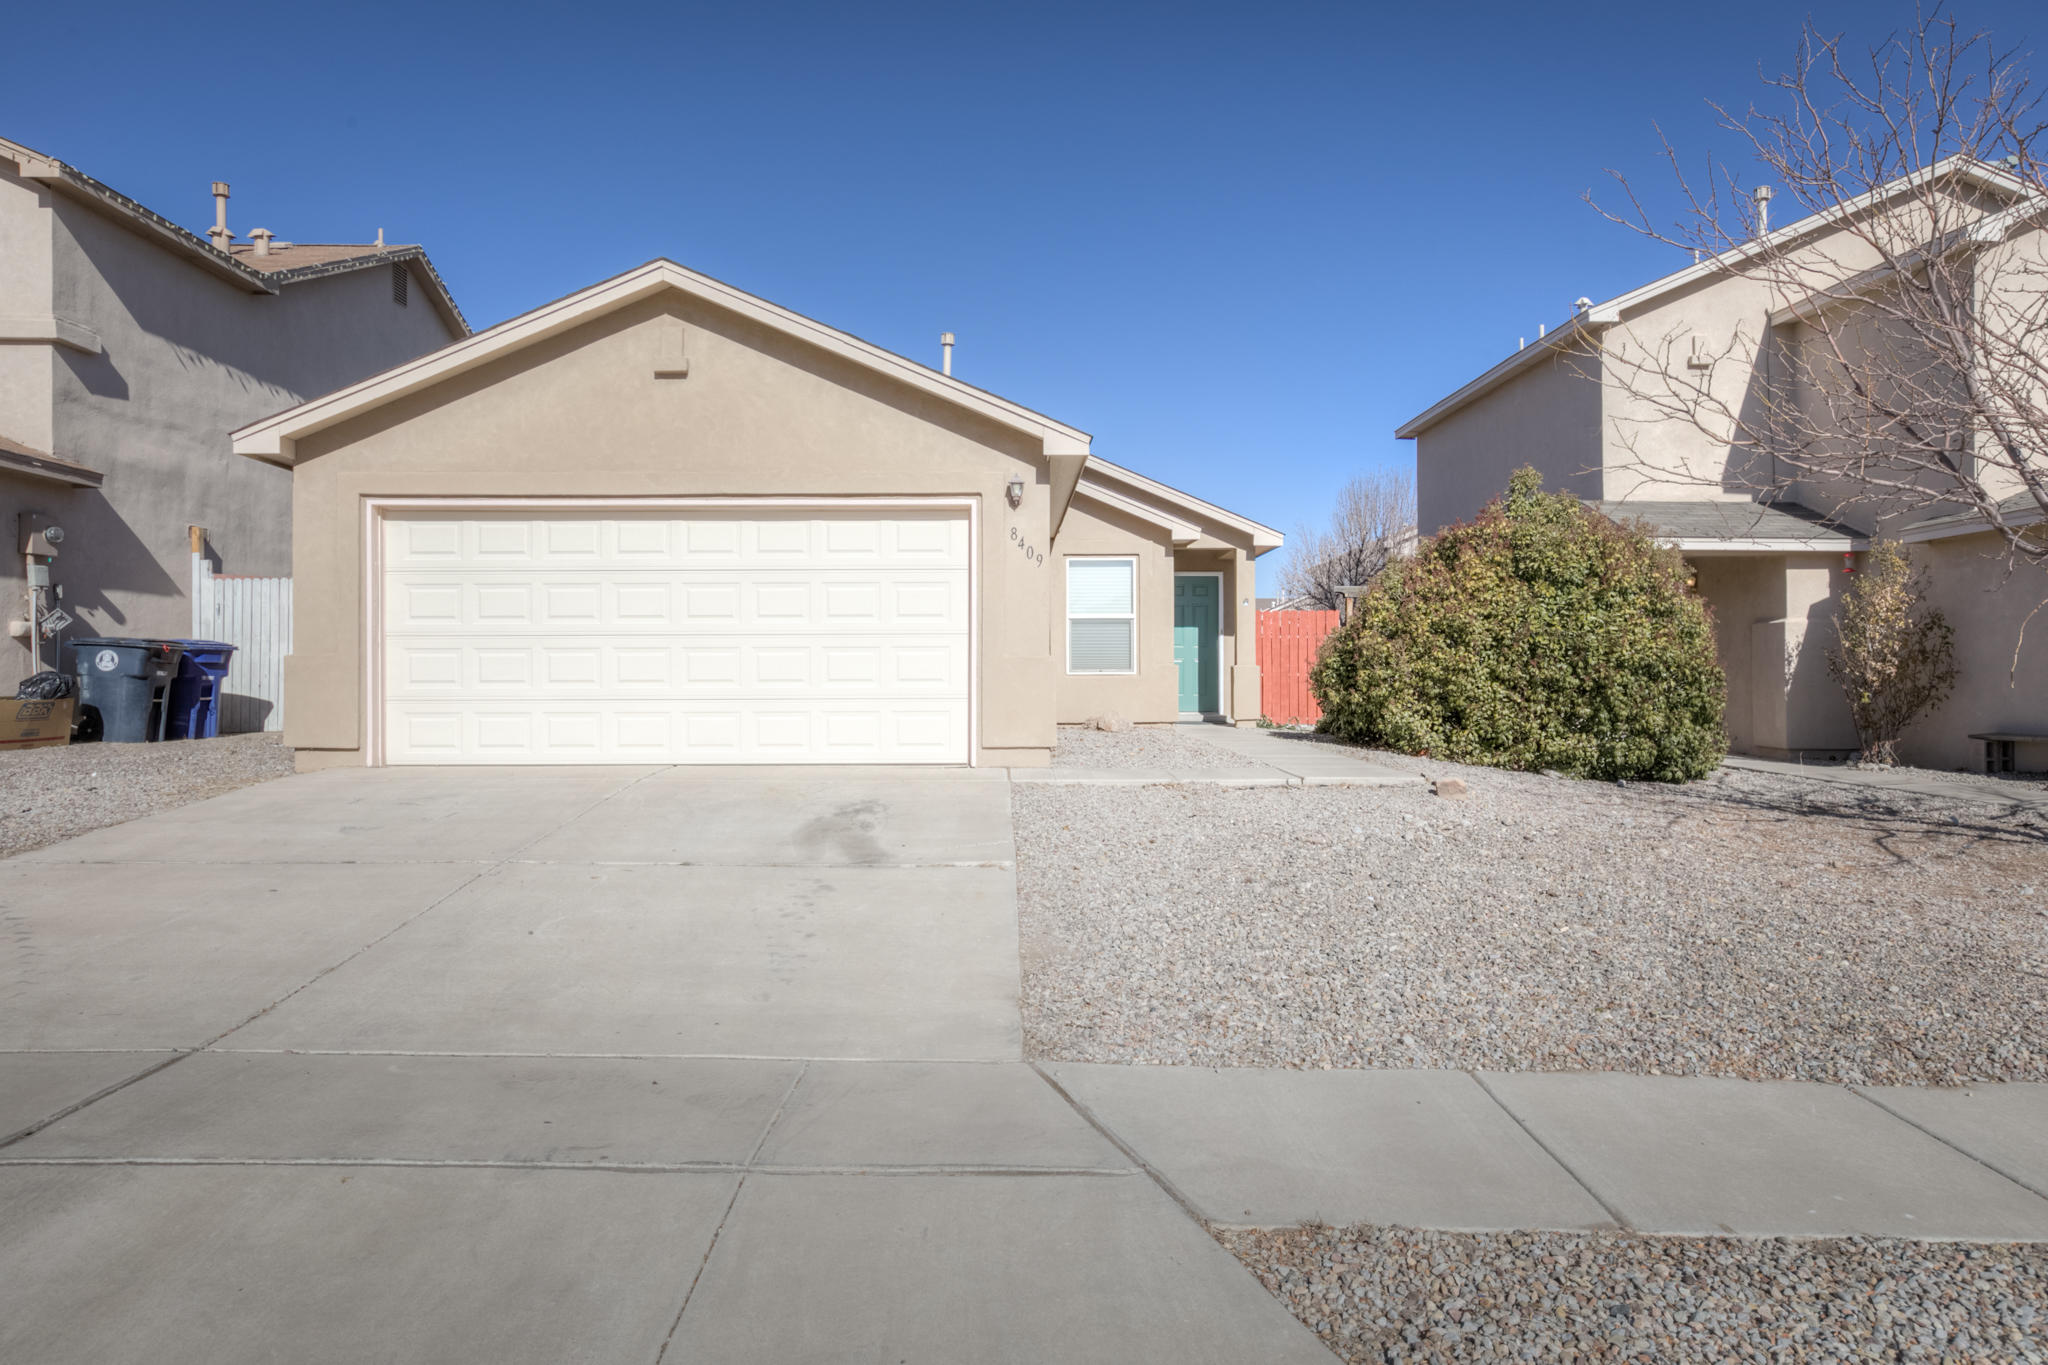 Great one story home in NW Albuquerque.  This great KB floorplan features 3 bedrooms, 2 full bathrooms, great room and large open kitchen.